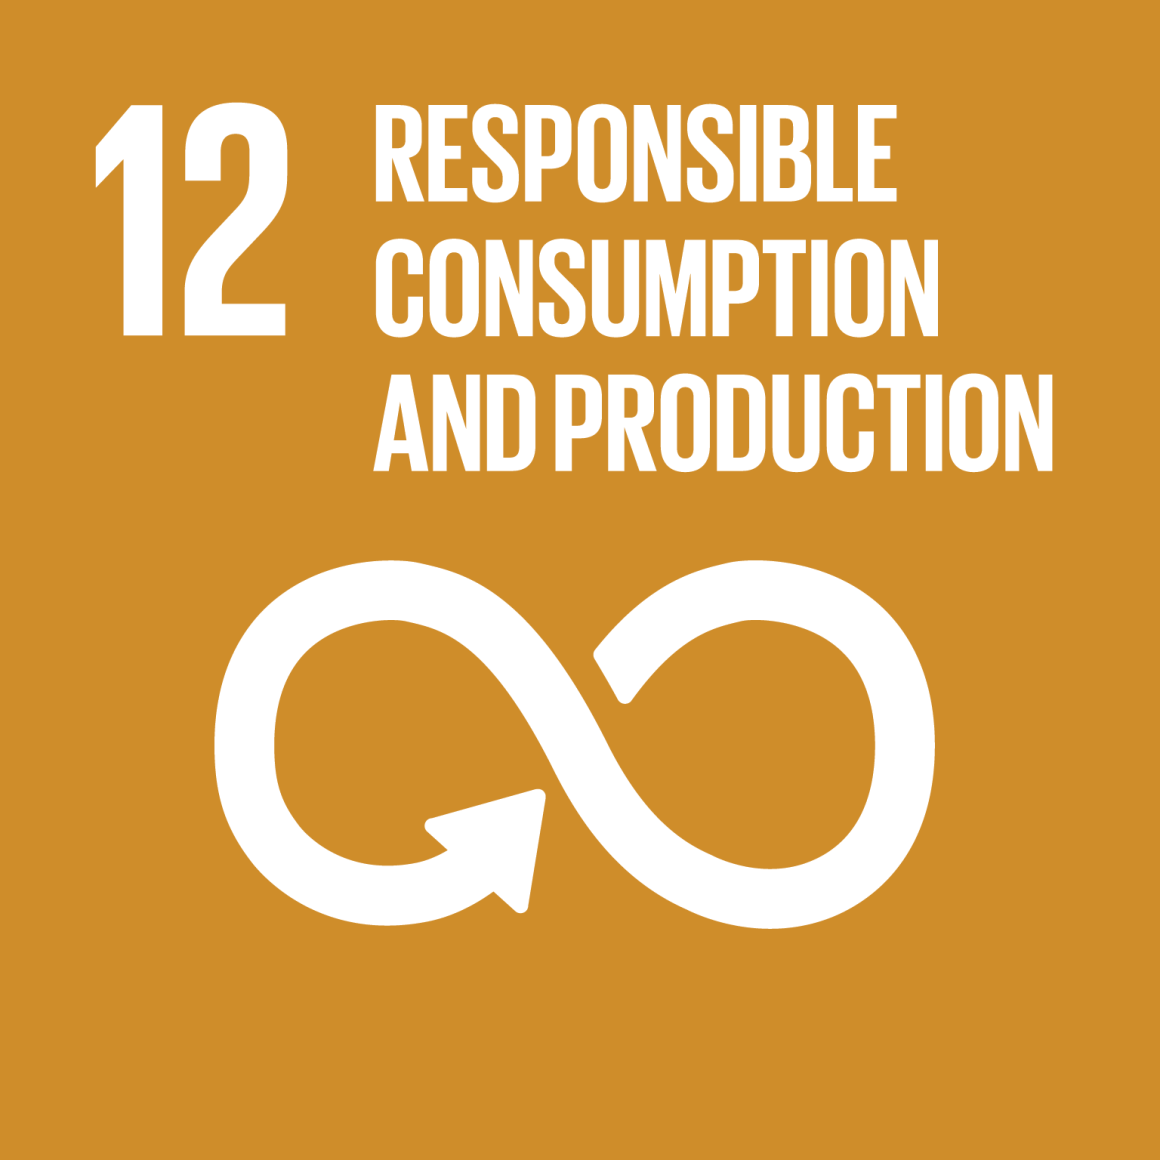 Goal 12 Responsible Consumption and Production